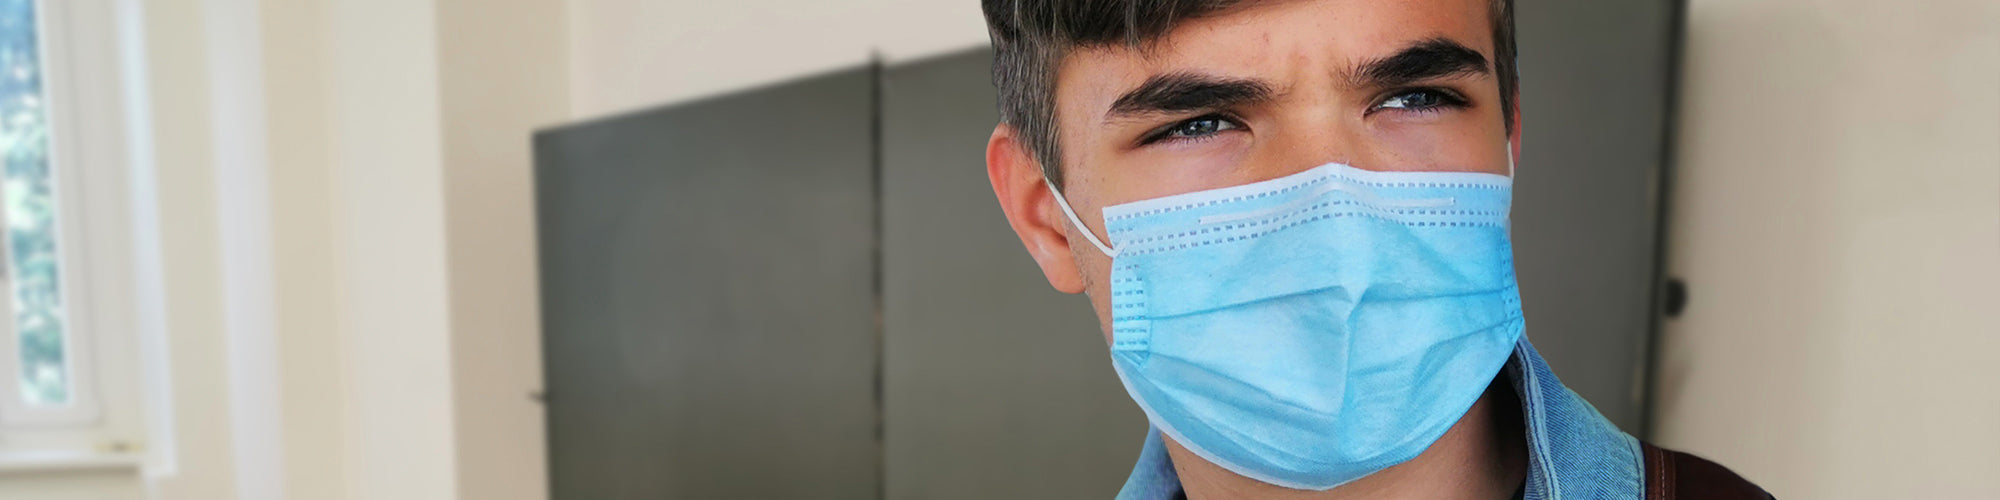 Qualities to Look for in a PPE Provider